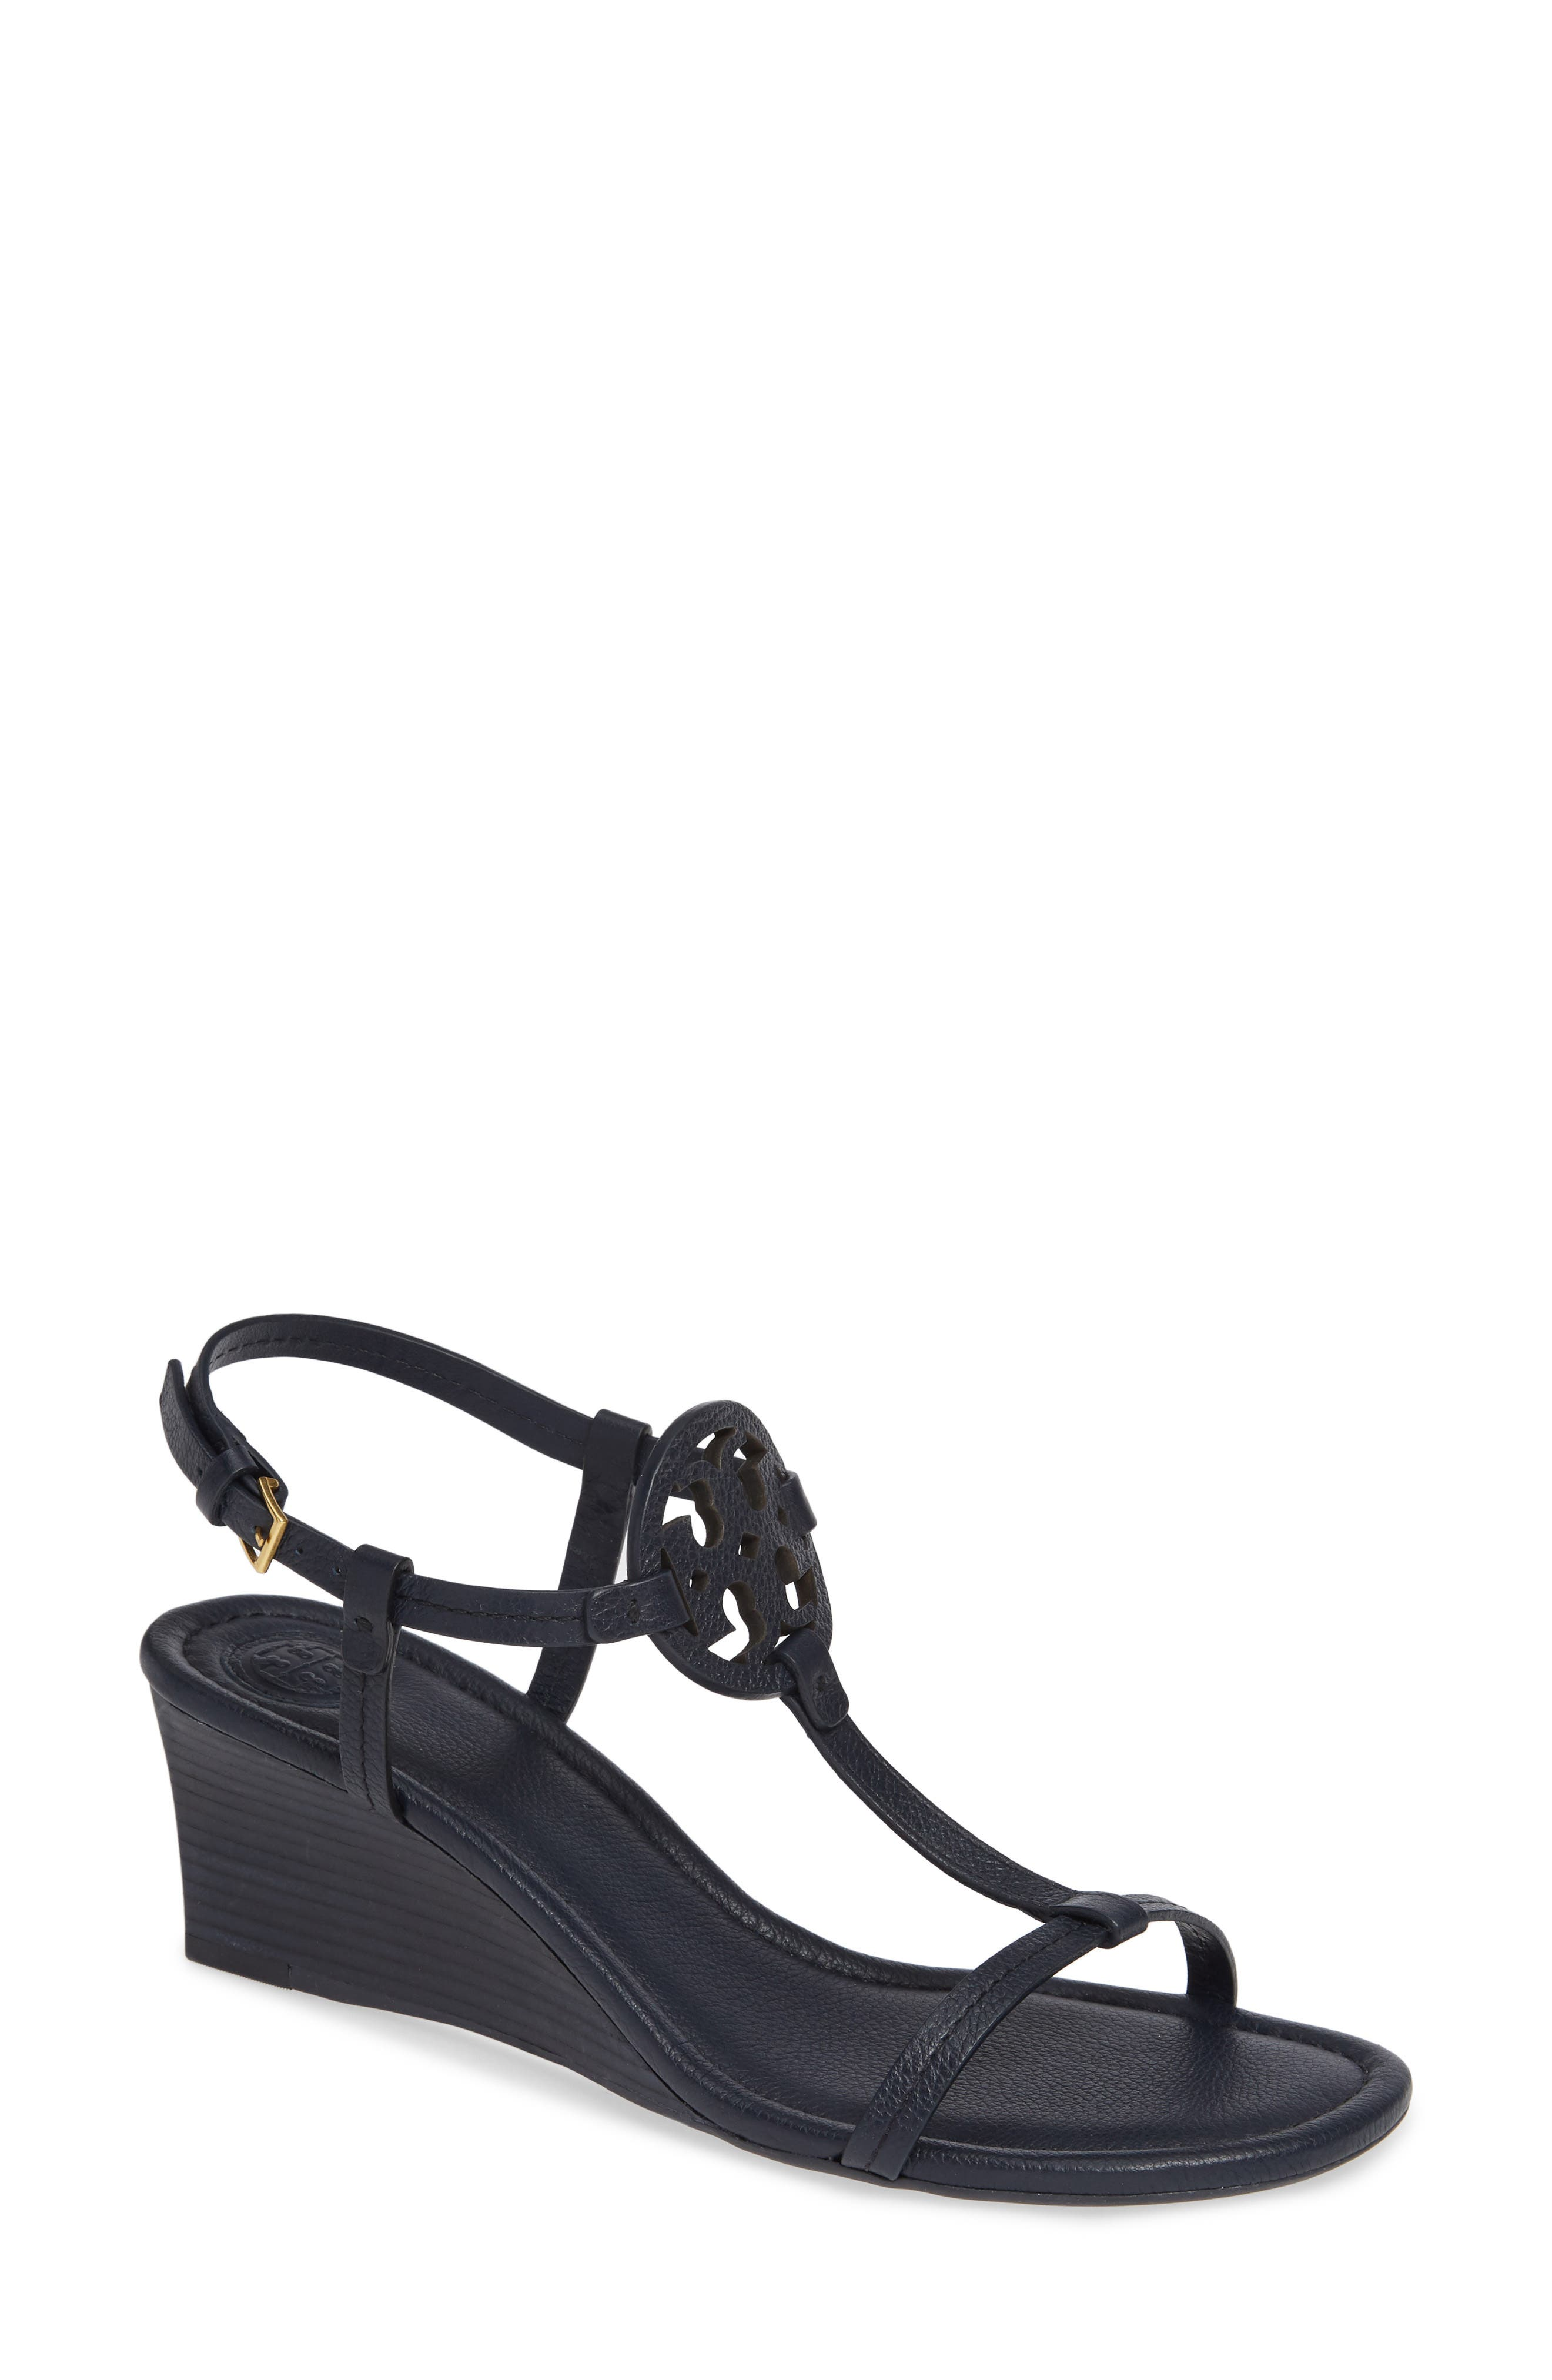 TORY BURCH, Miller Wedge Sandal, Main thumbnail 1, color, PERFECT NAVY